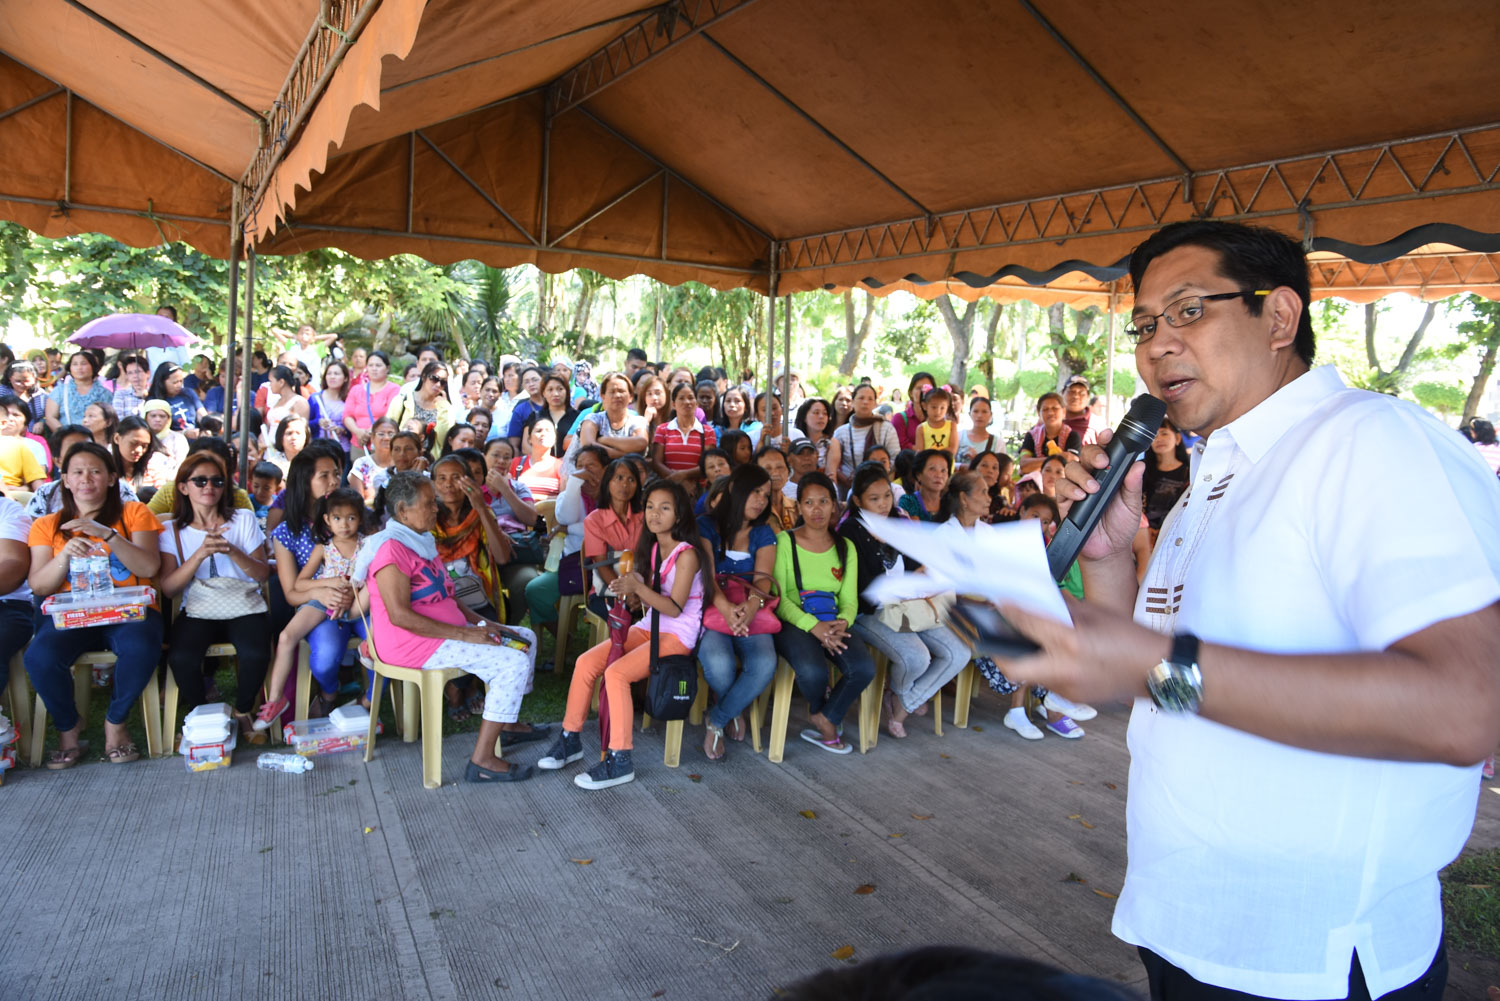 ASSISTANCE. General Santos City Mayor Ronnel Rivera assures the families of the Pablo casualties that the city government will assist the children of the presumed dead fishermen.